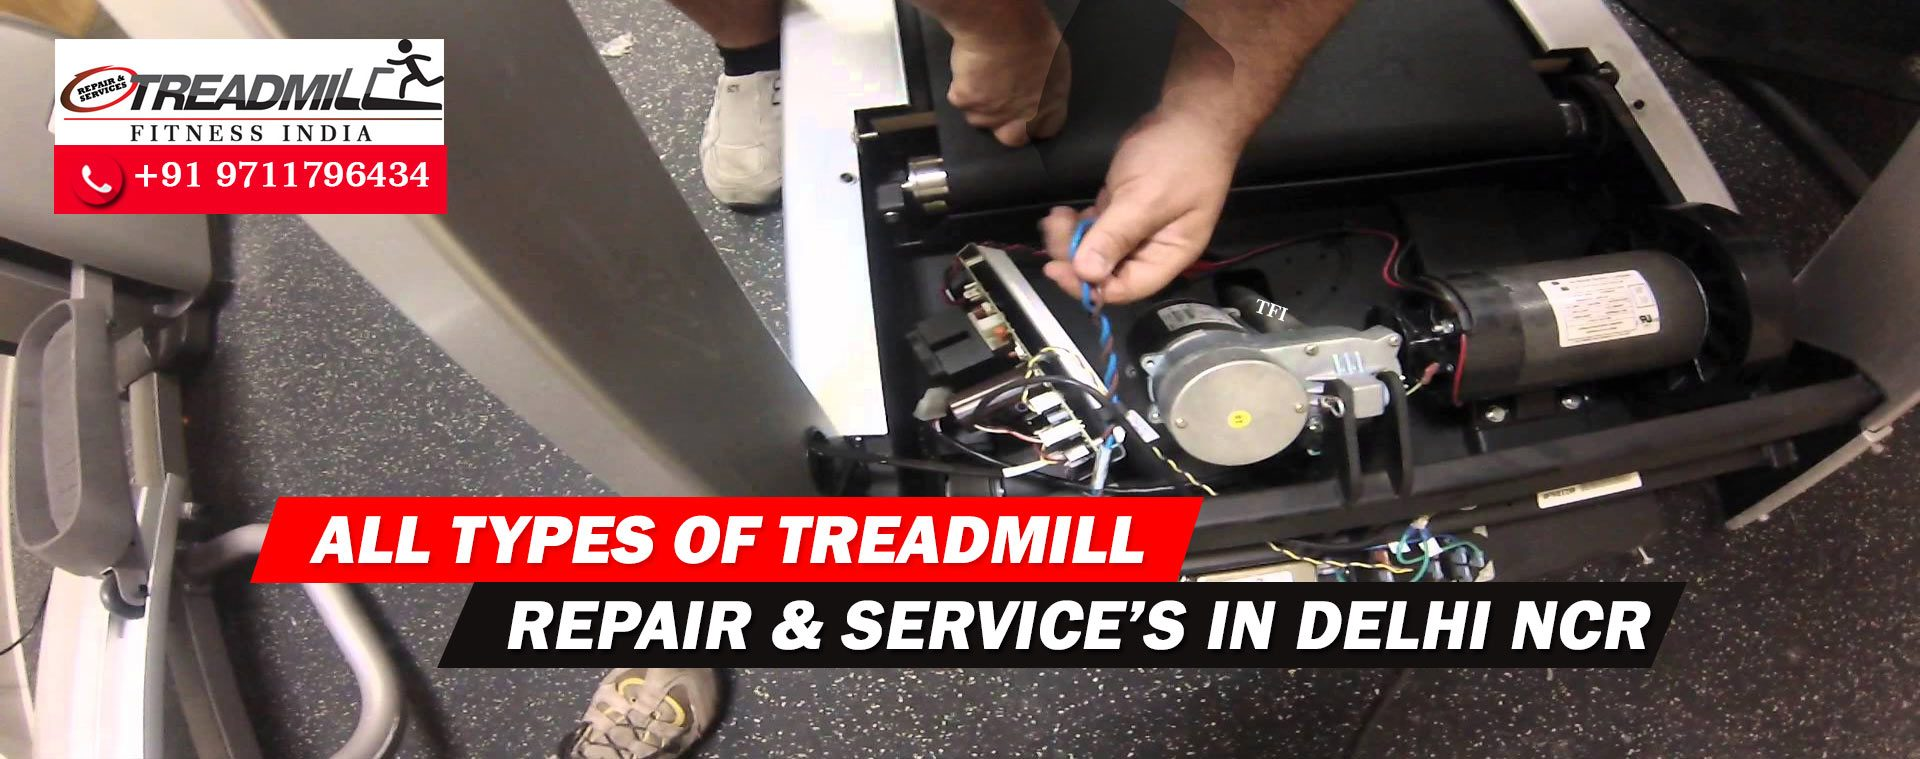 Home Treadmill Repair Home Treadmill Repair new images